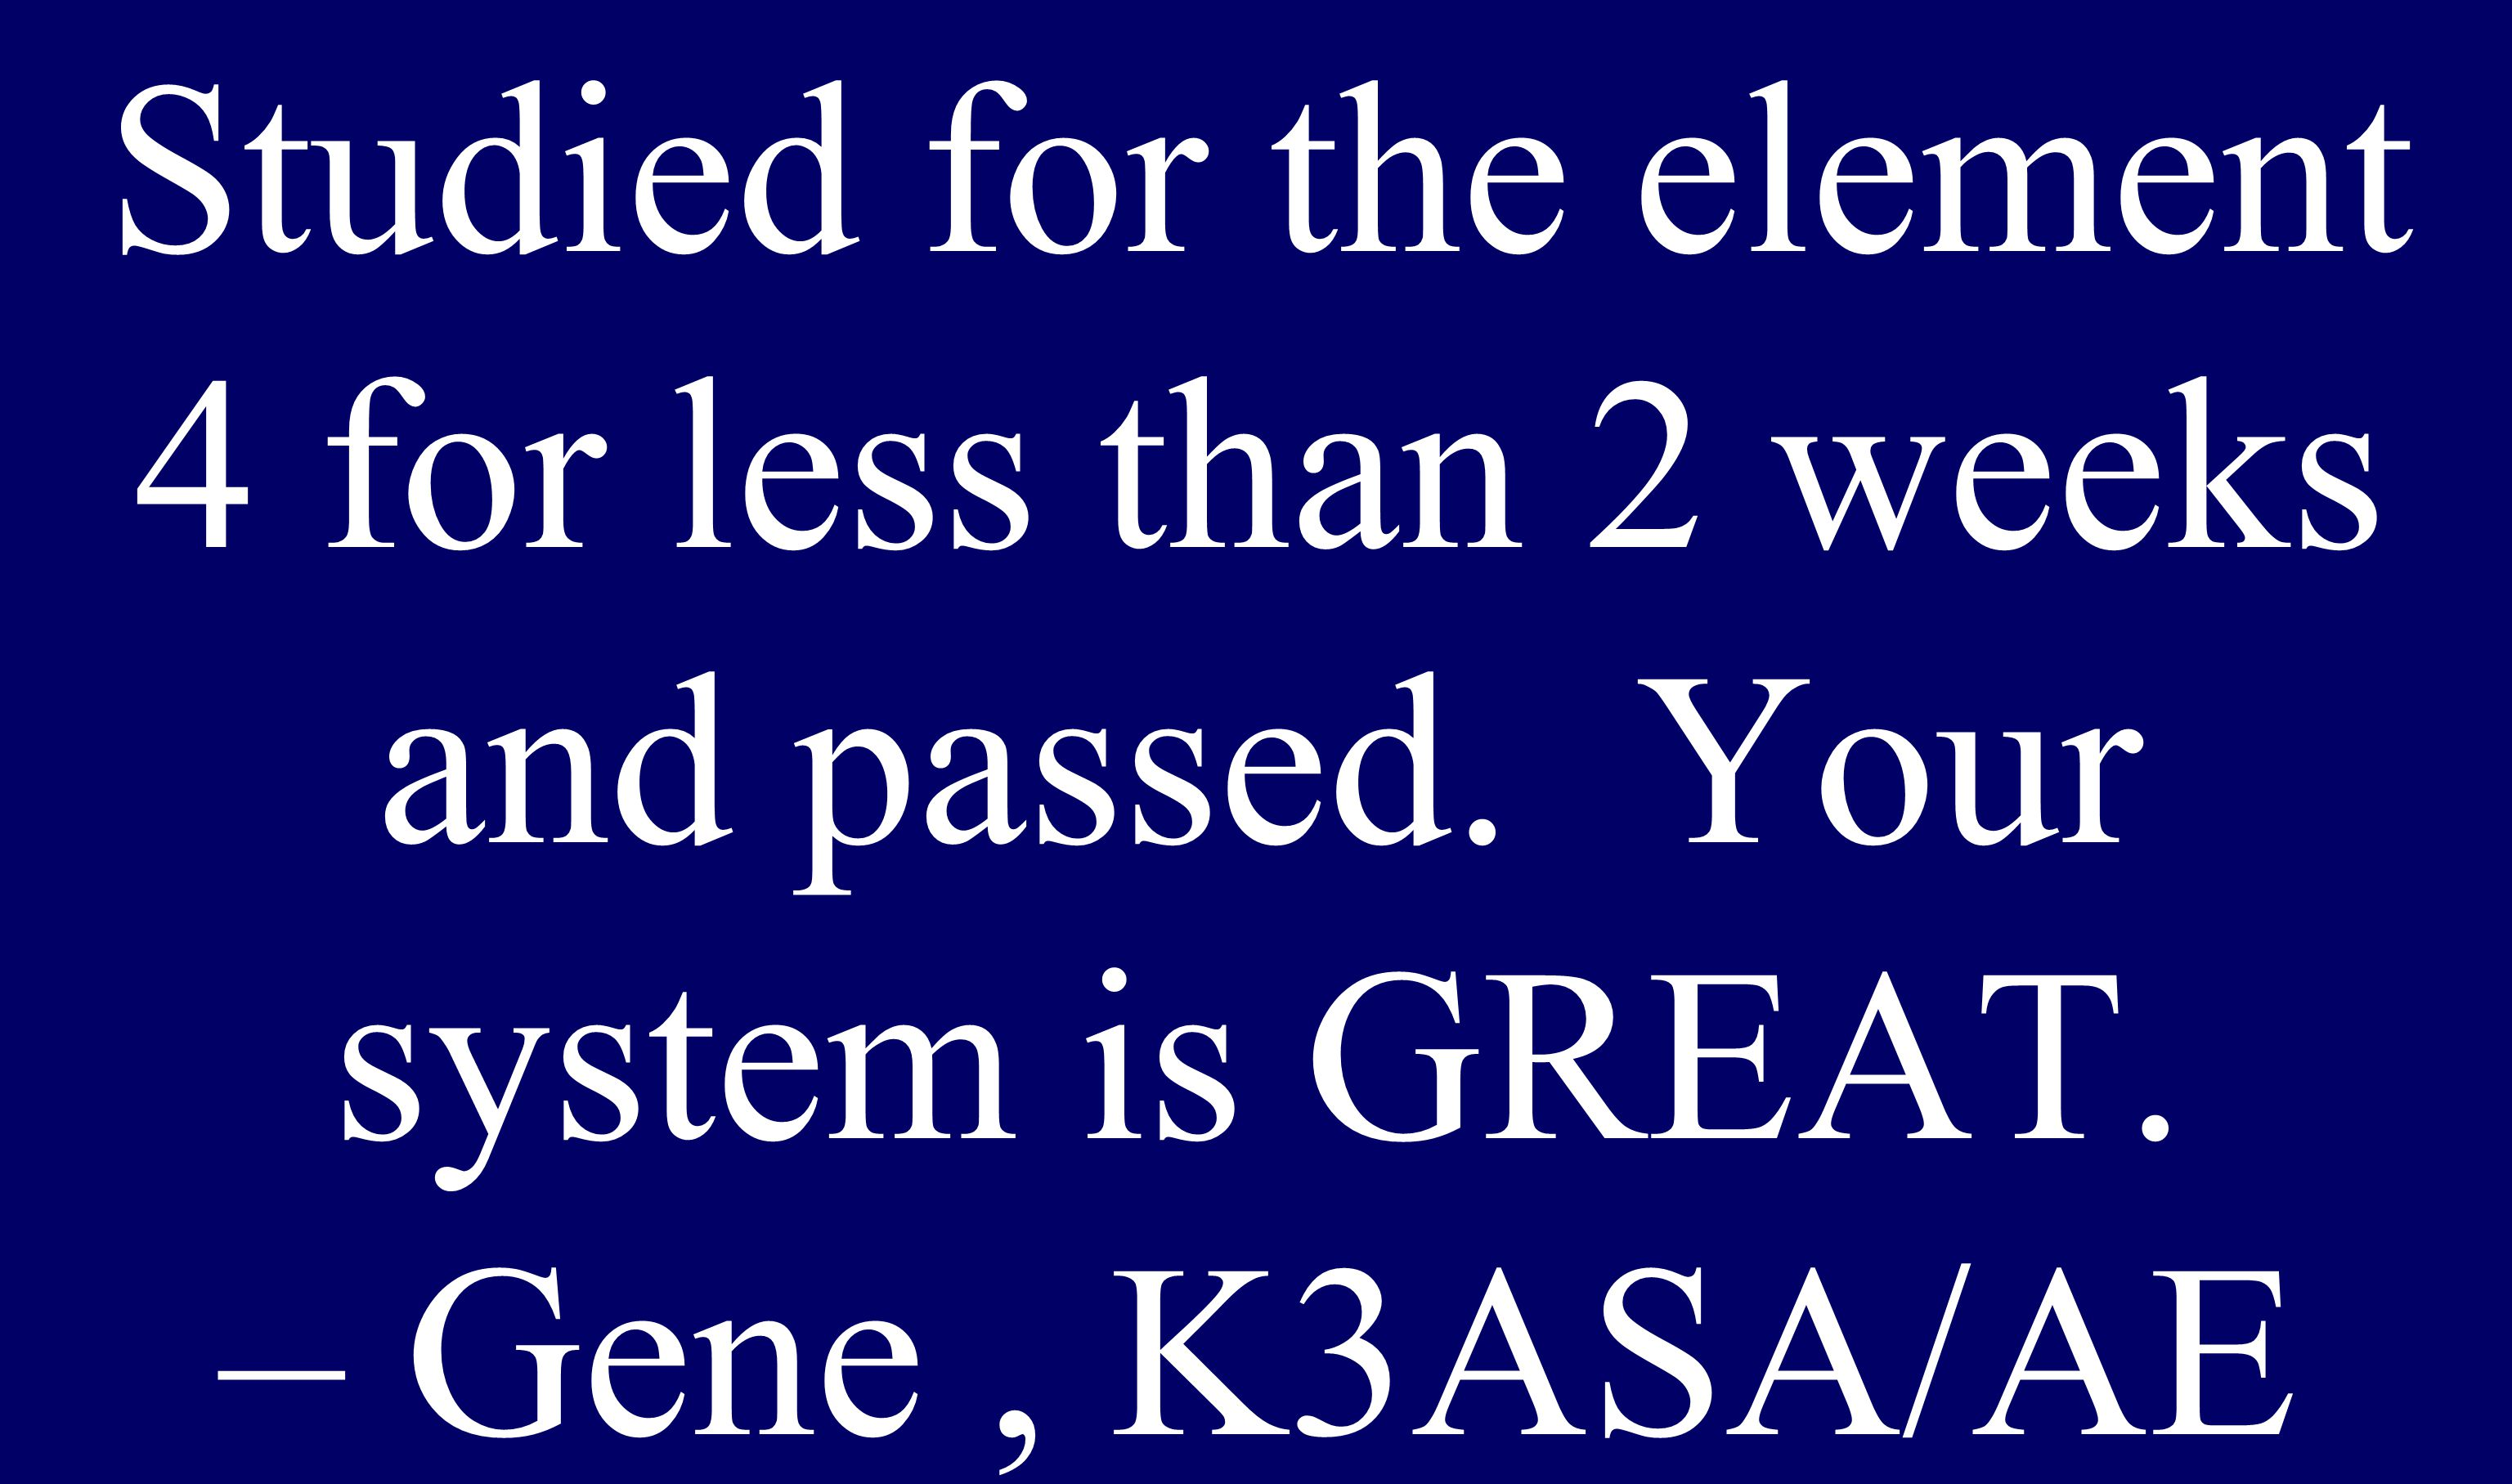 Studied for the element 4 for less than 2 weeks and passed. Your system is GREAT. – Gene, K3ASA/AE